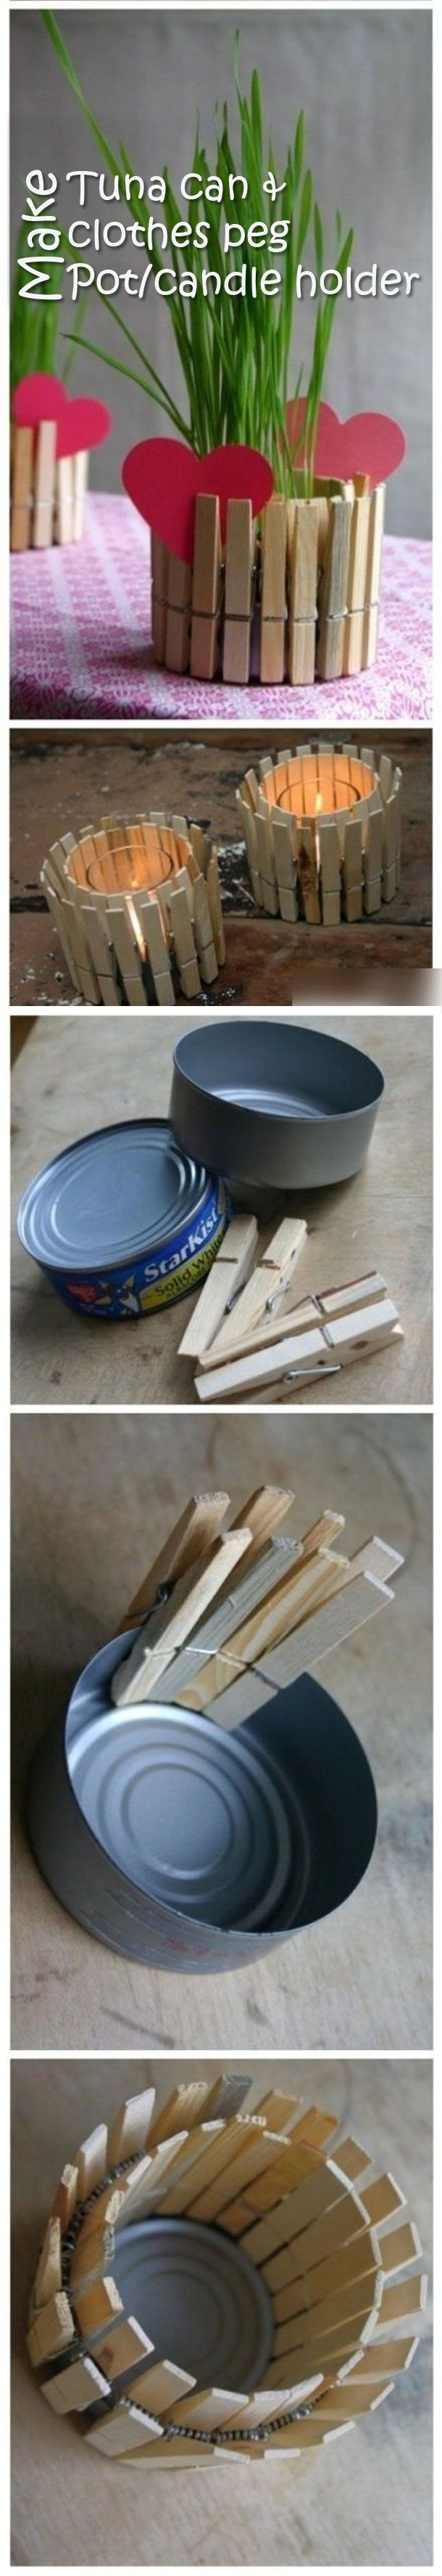 Make your own wooden clothes peg planter